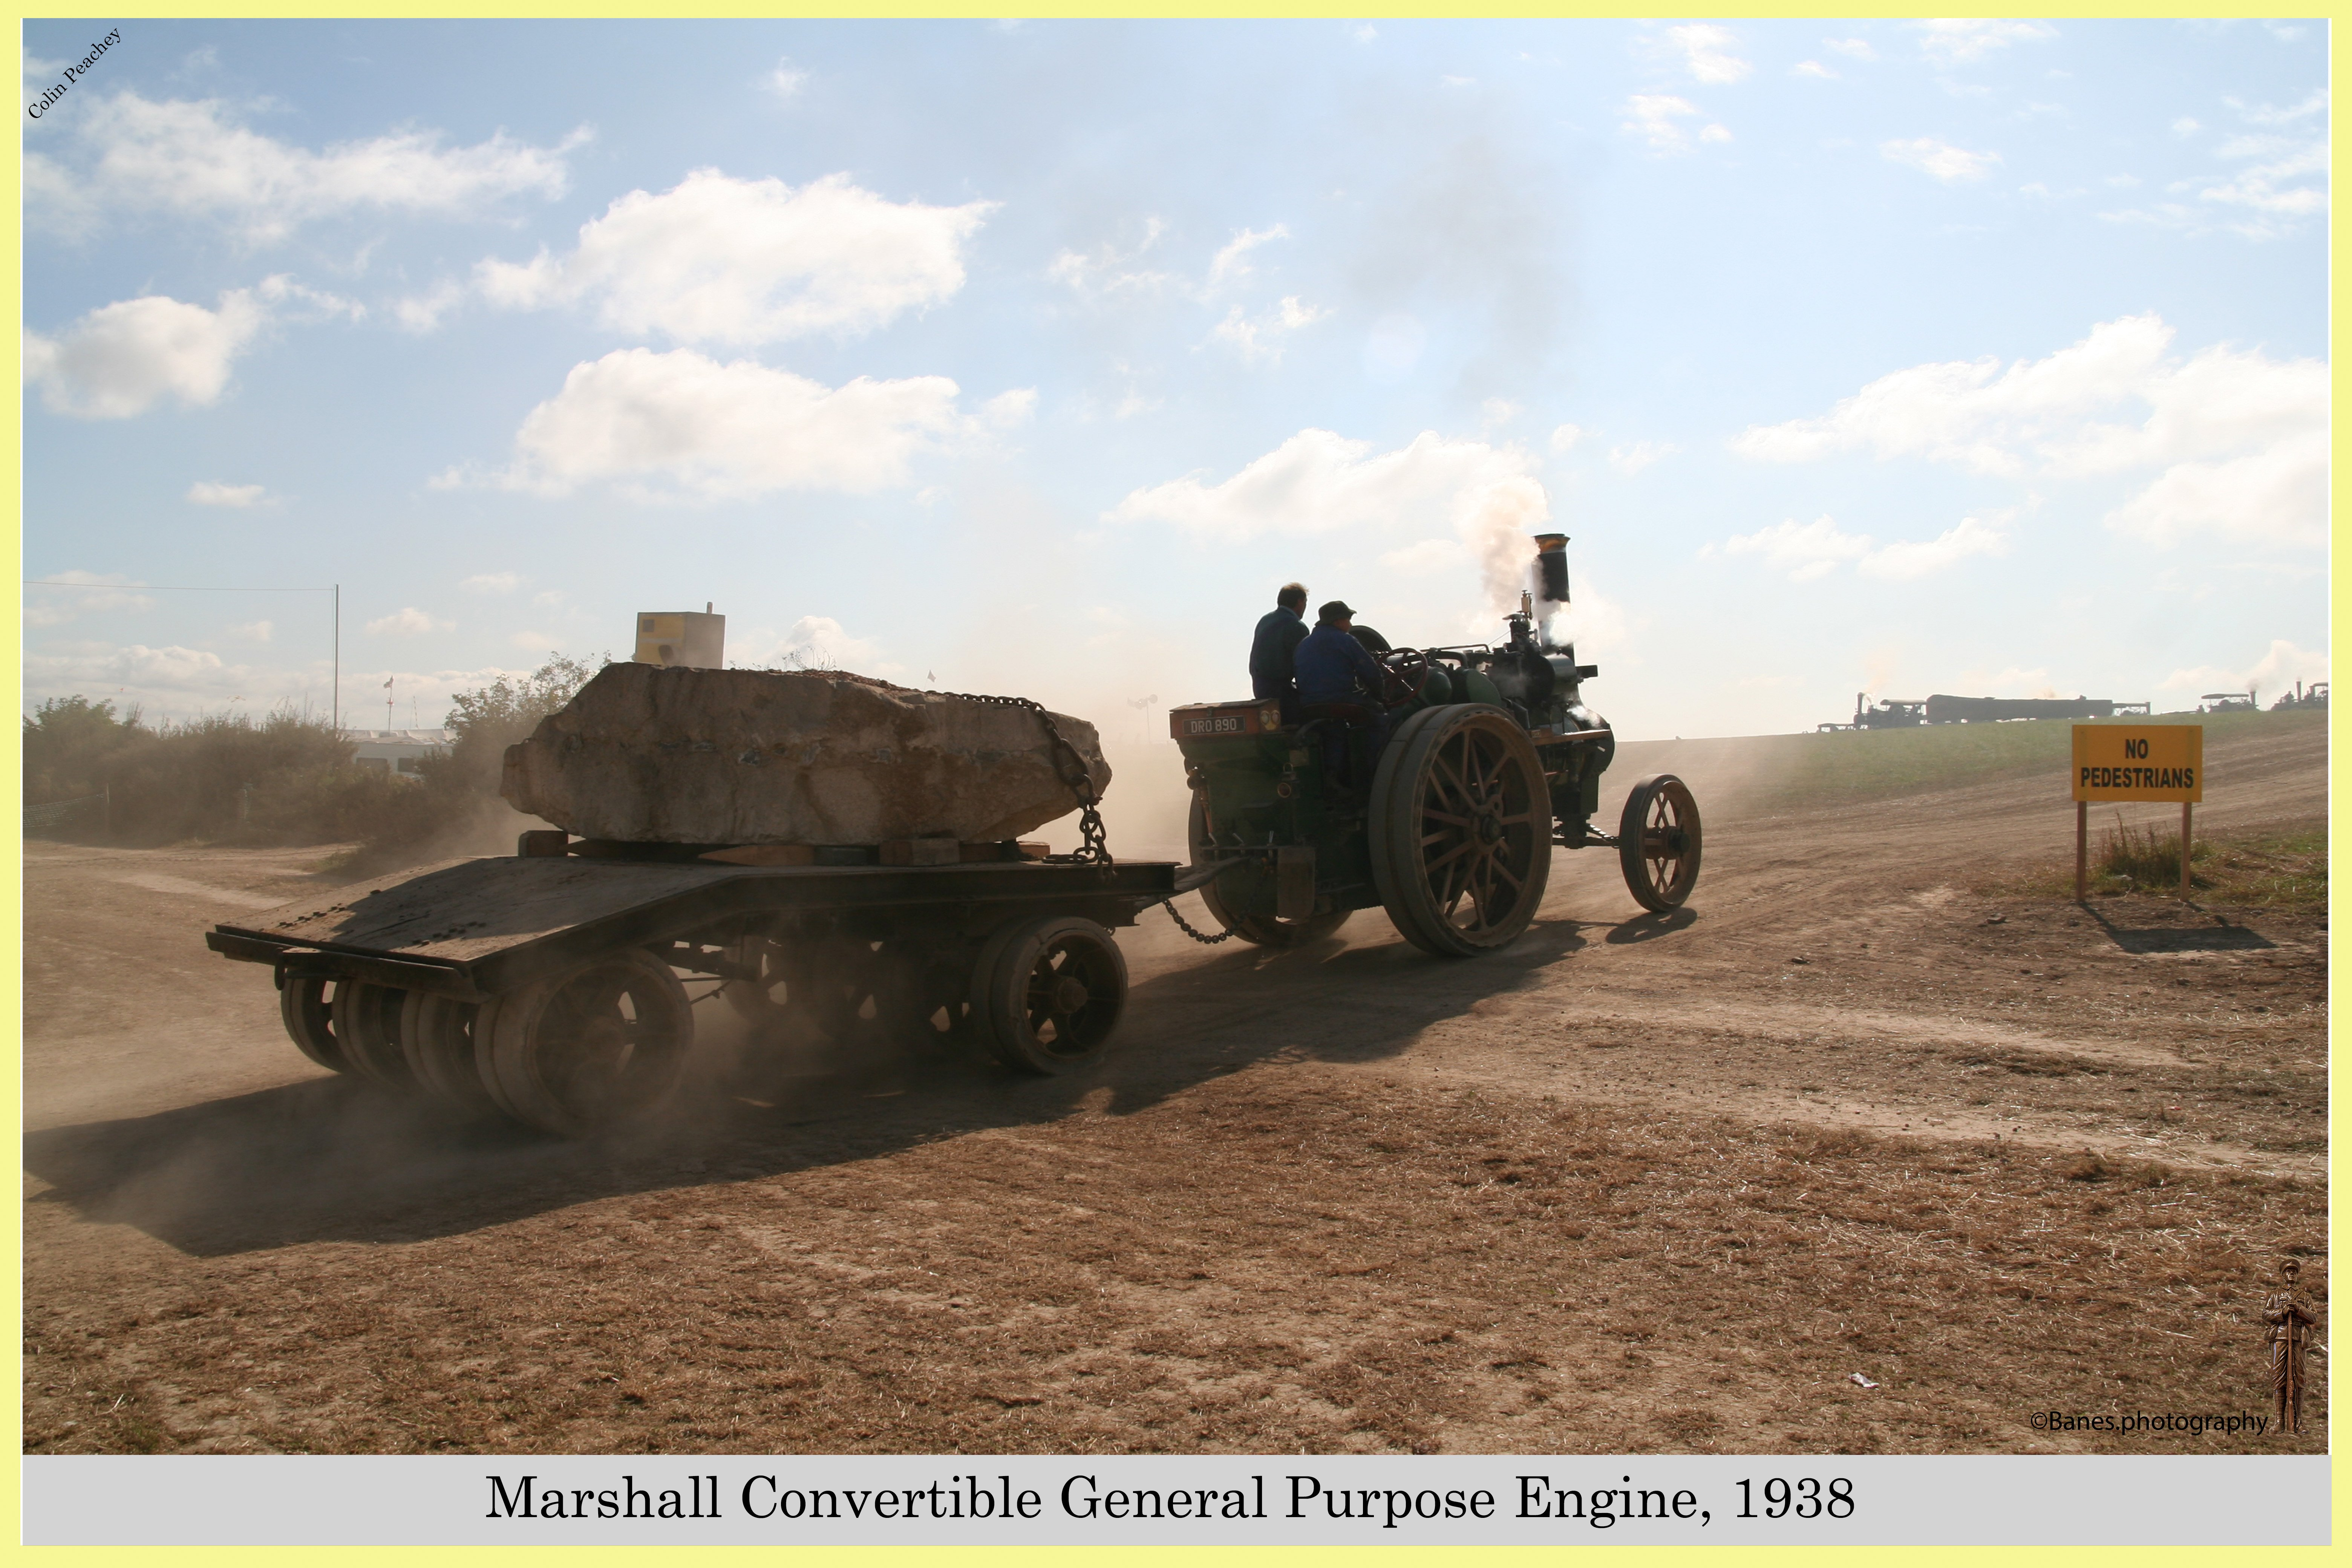 Marshall Convertible General Purpose Engine, Reg No. DRO 890, 1938